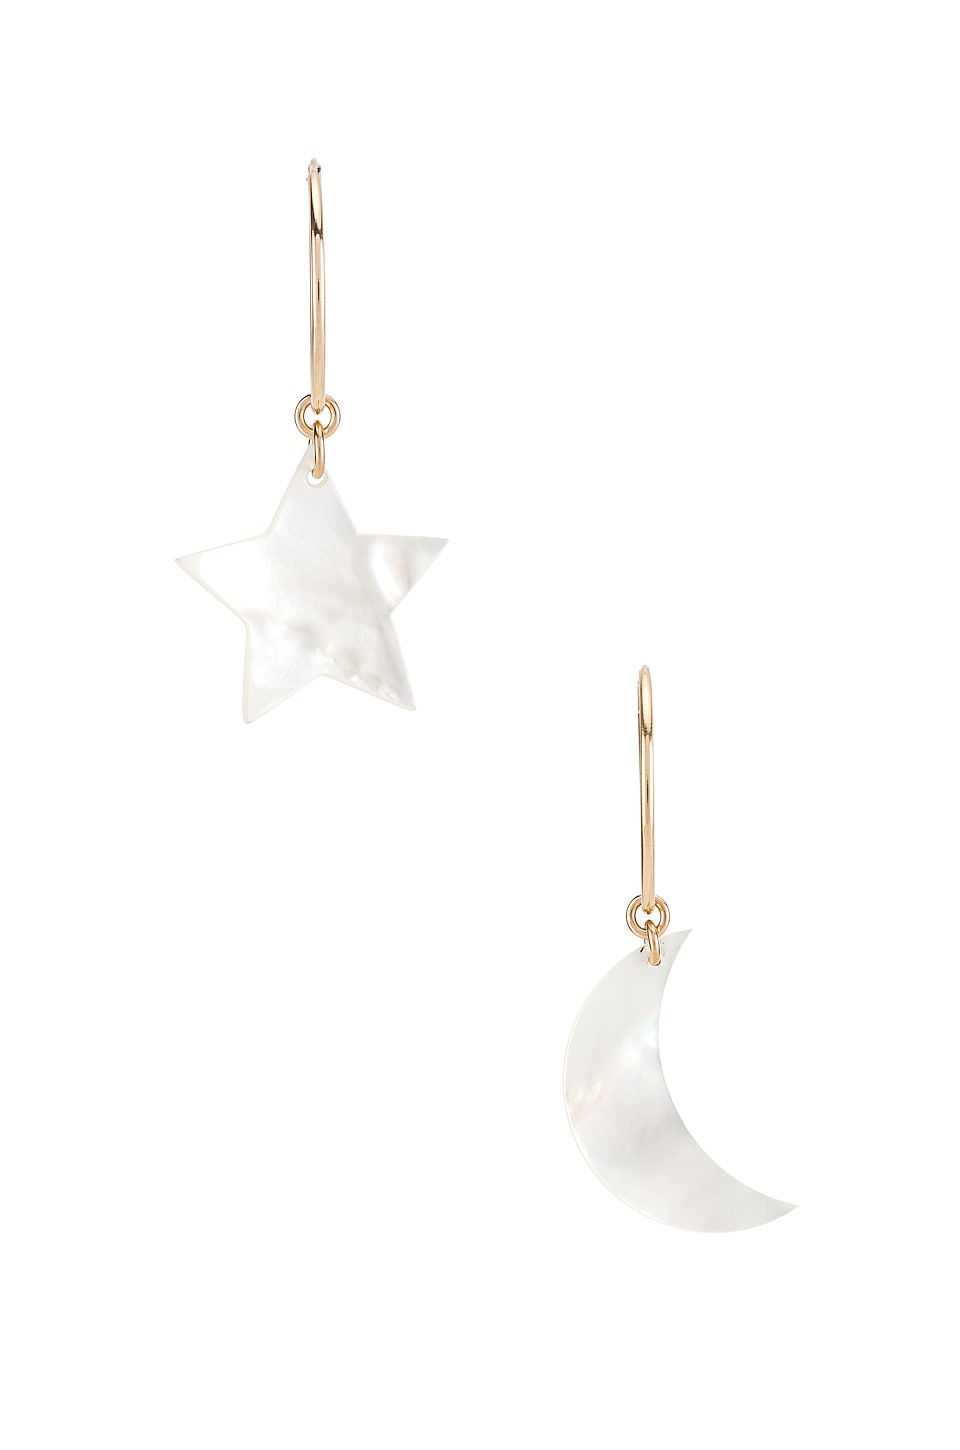 Paradigm Night Sky Hoops in Gold & Mother Of Pearl